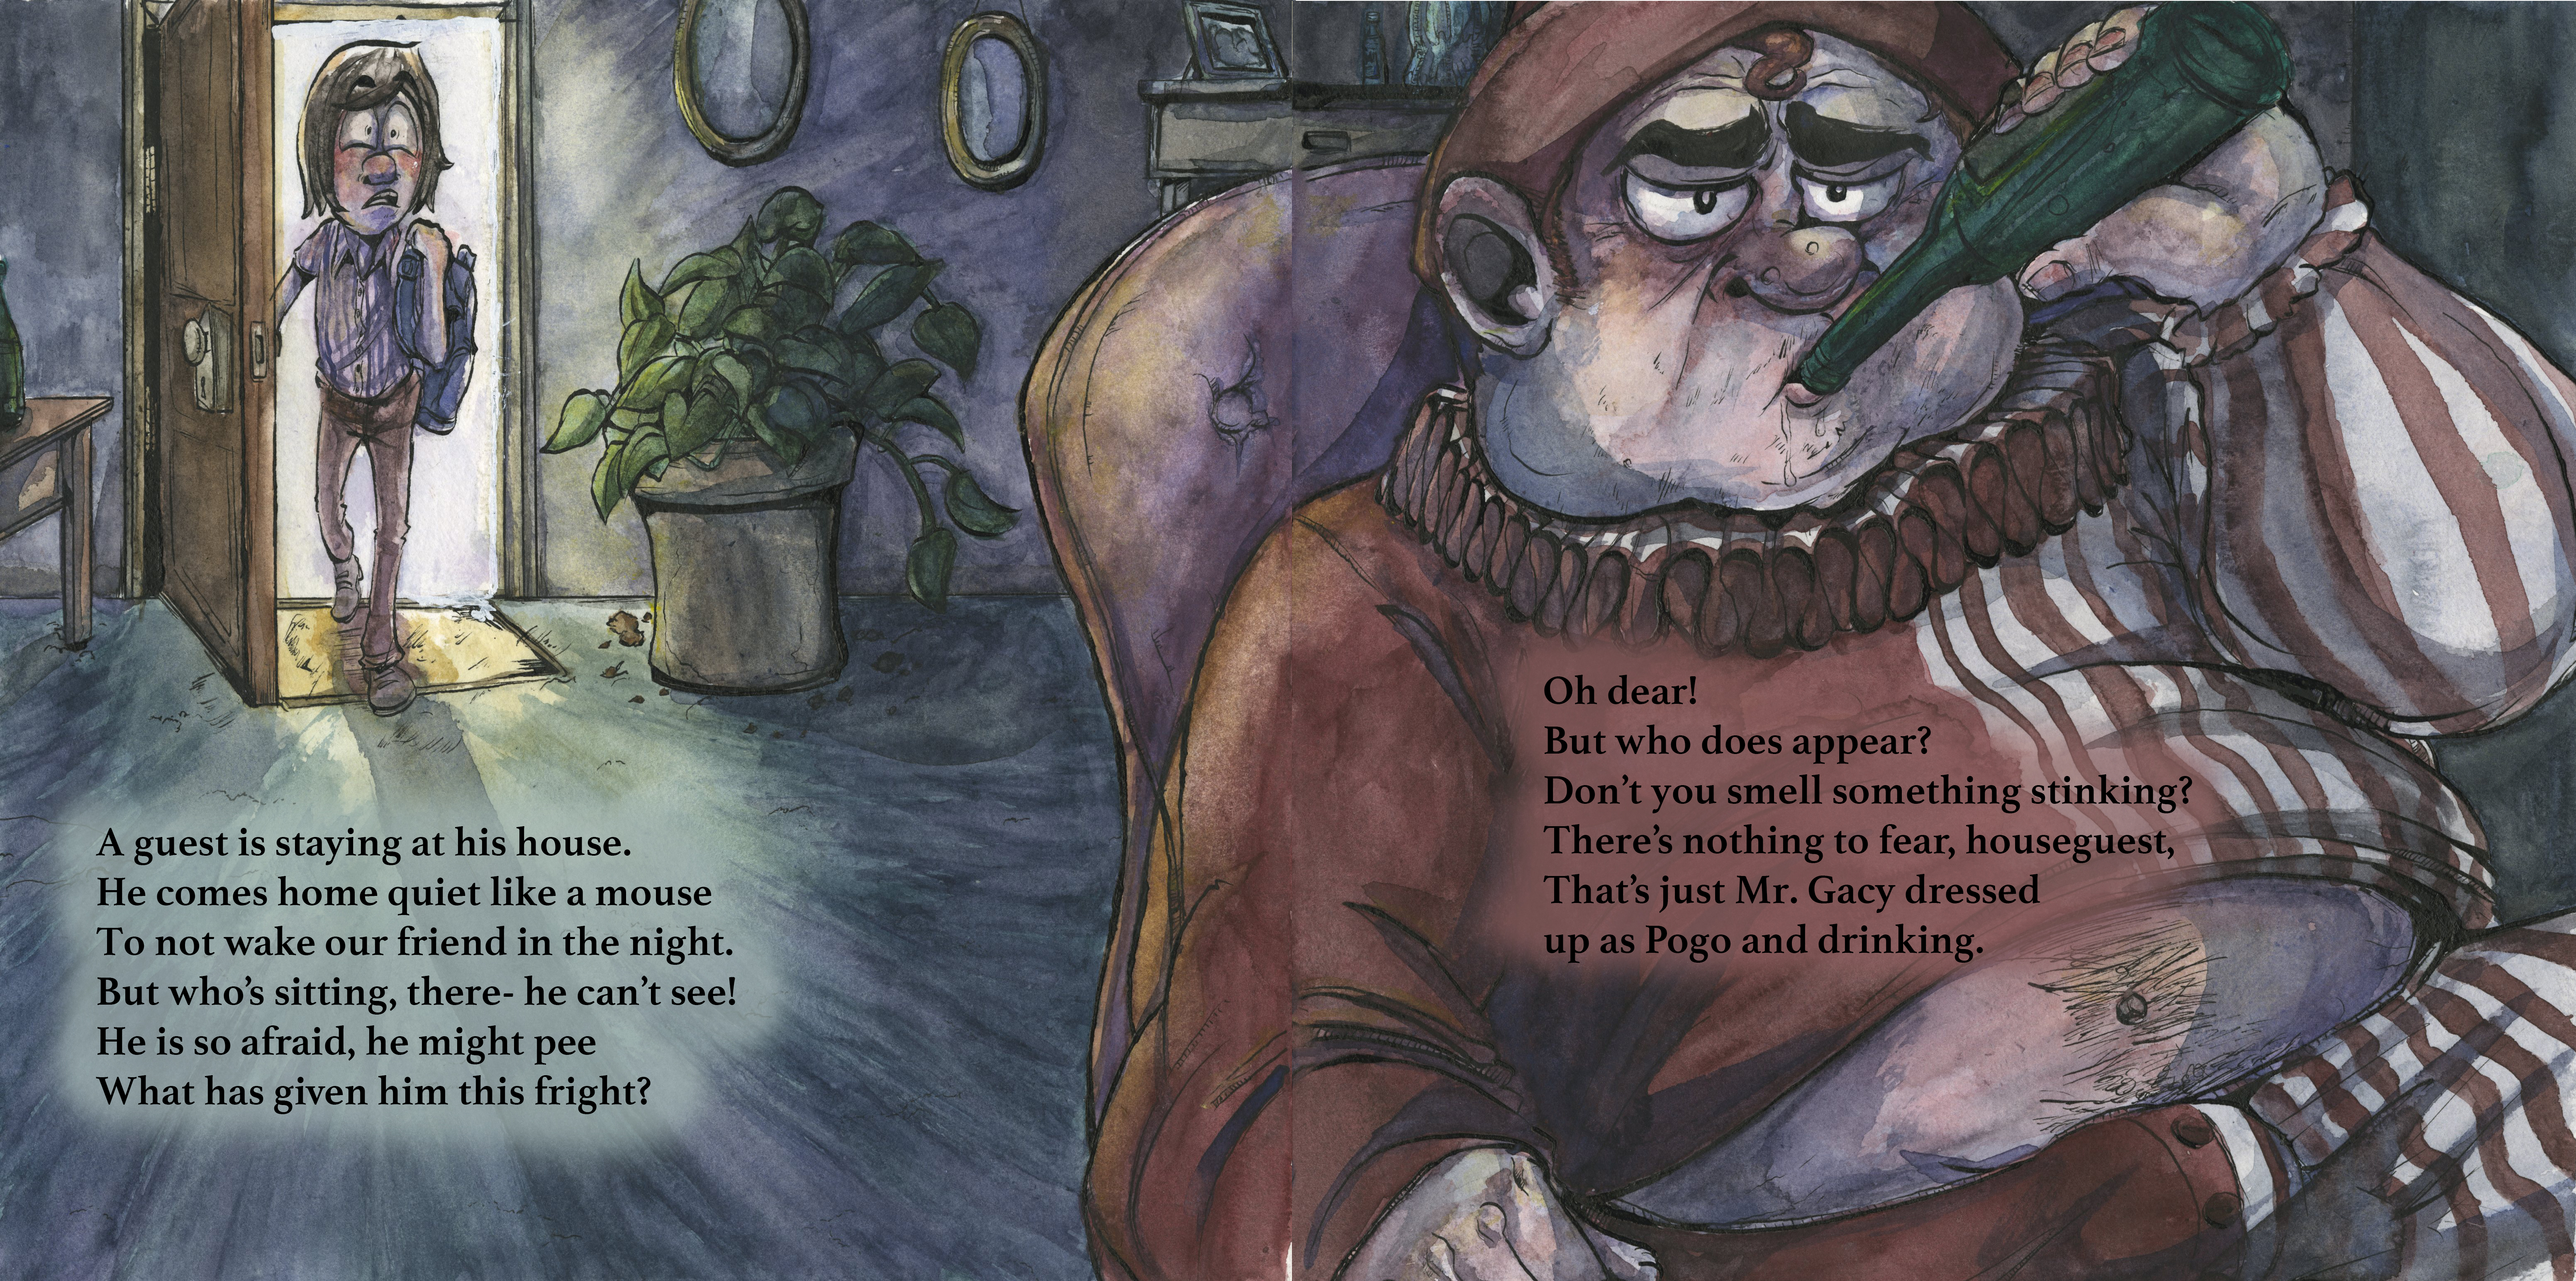 Mr. Gacy pages 13-14